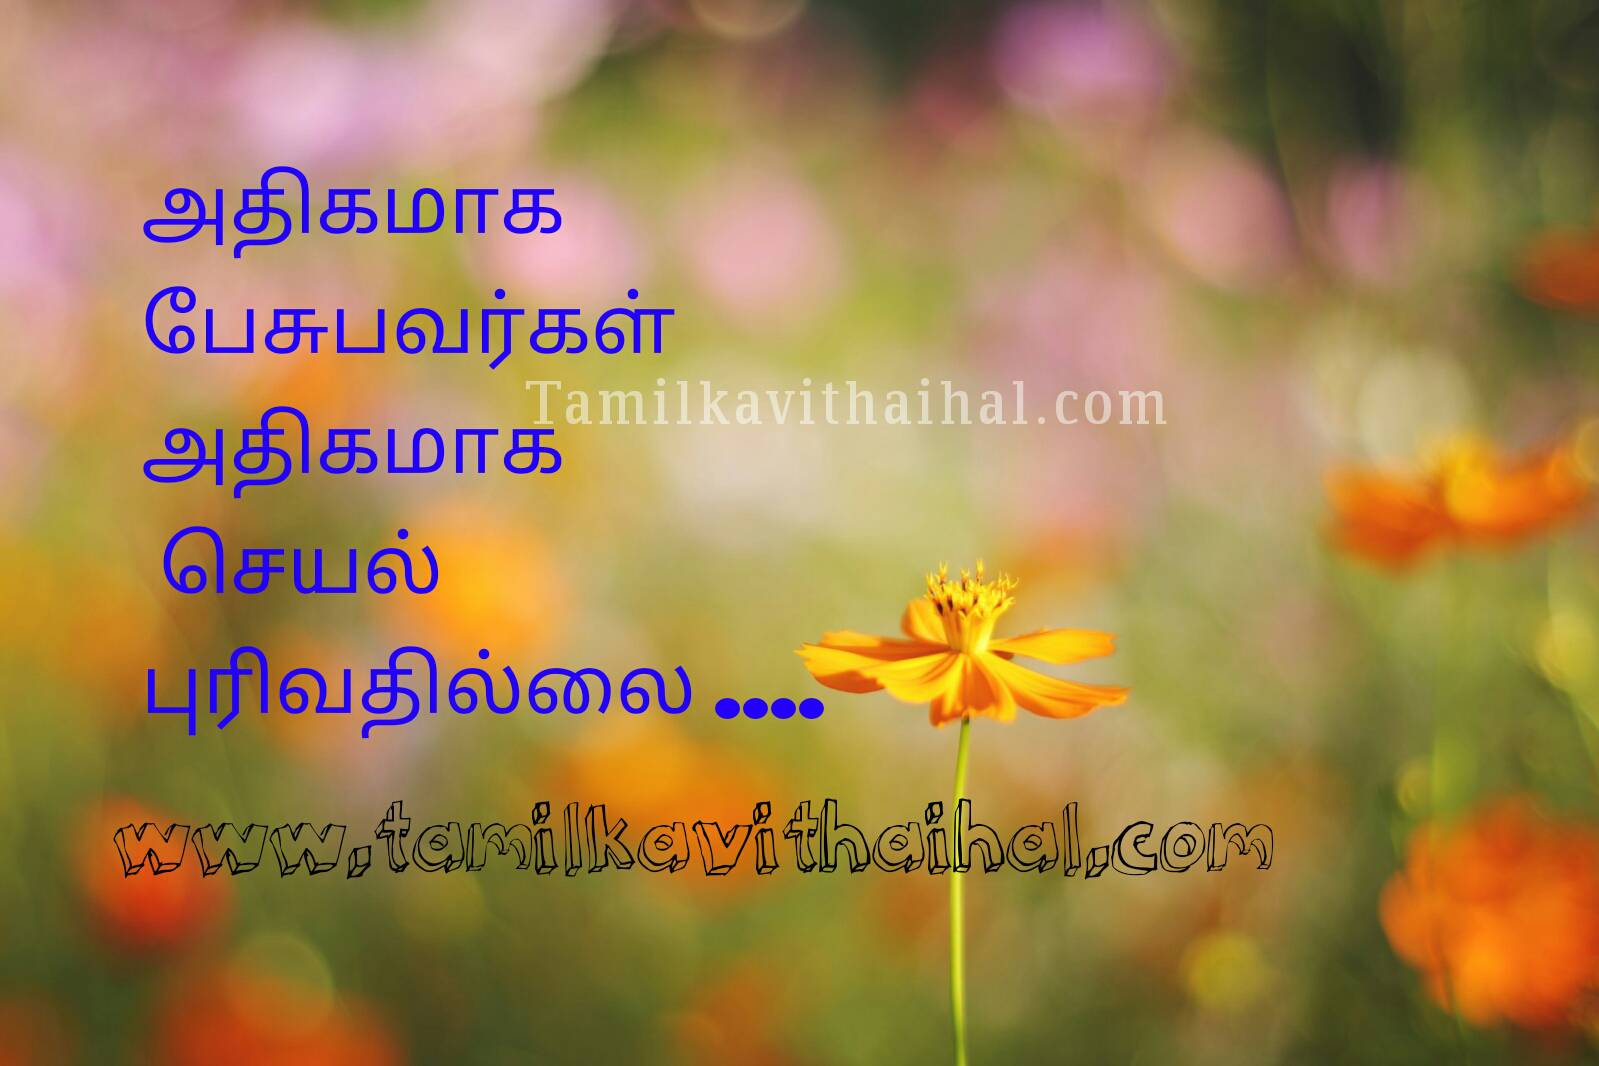 Awesome quotes talkative person seyal athikam illai best advise thathuvam whatsapp dp pic